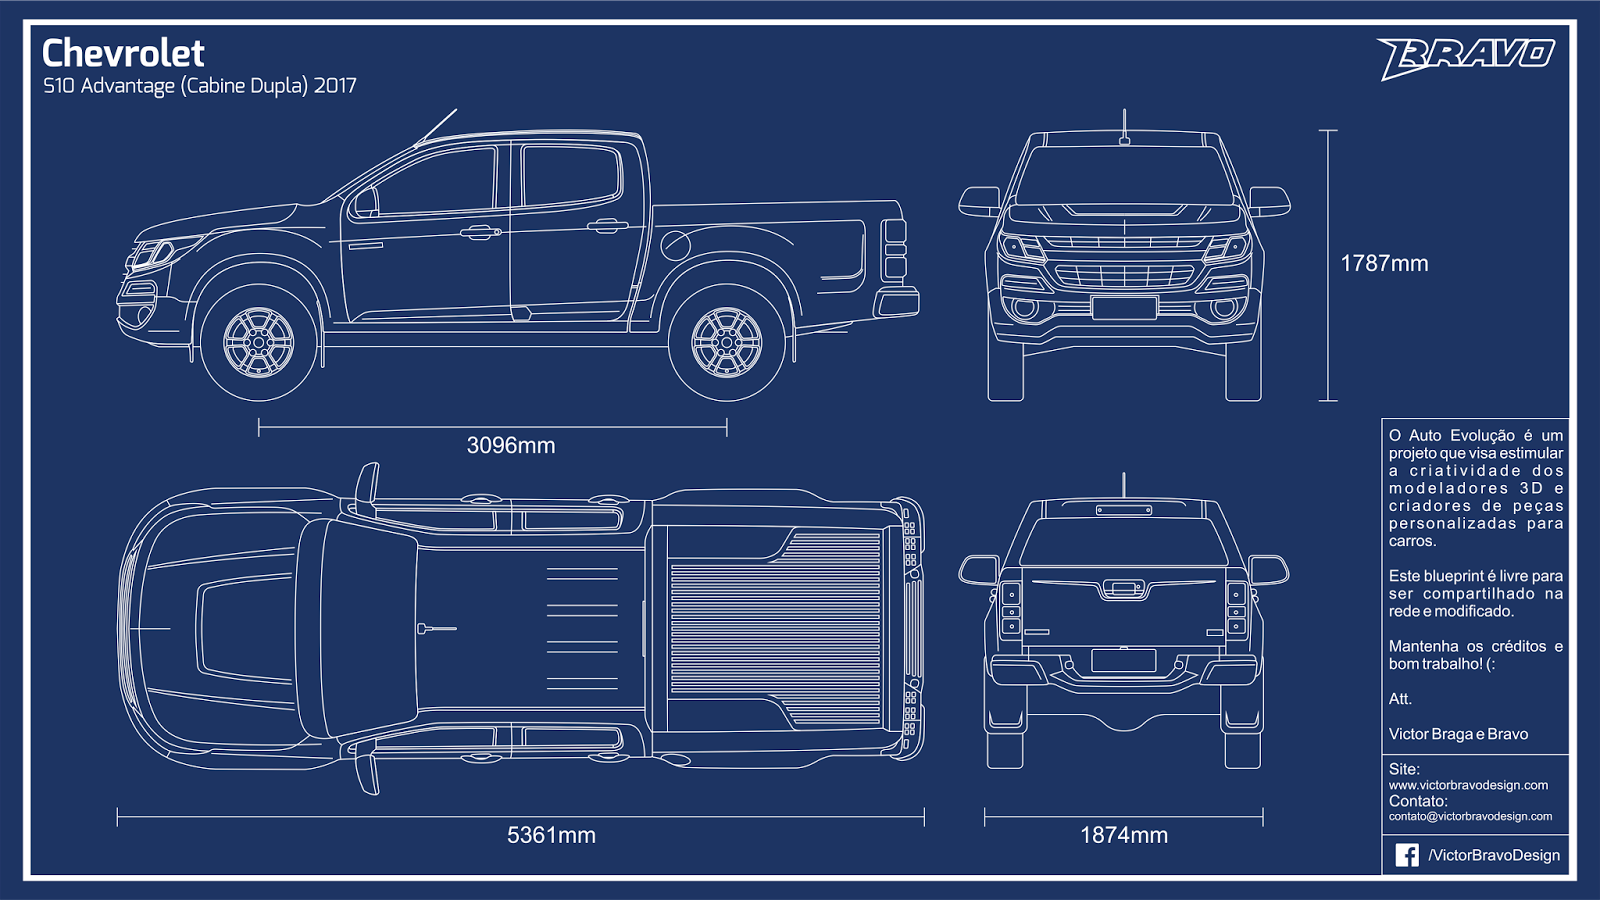 Imagem mostrando o blueprint do Chevrolet S10 Advantage (Cabine Dupla) 2017